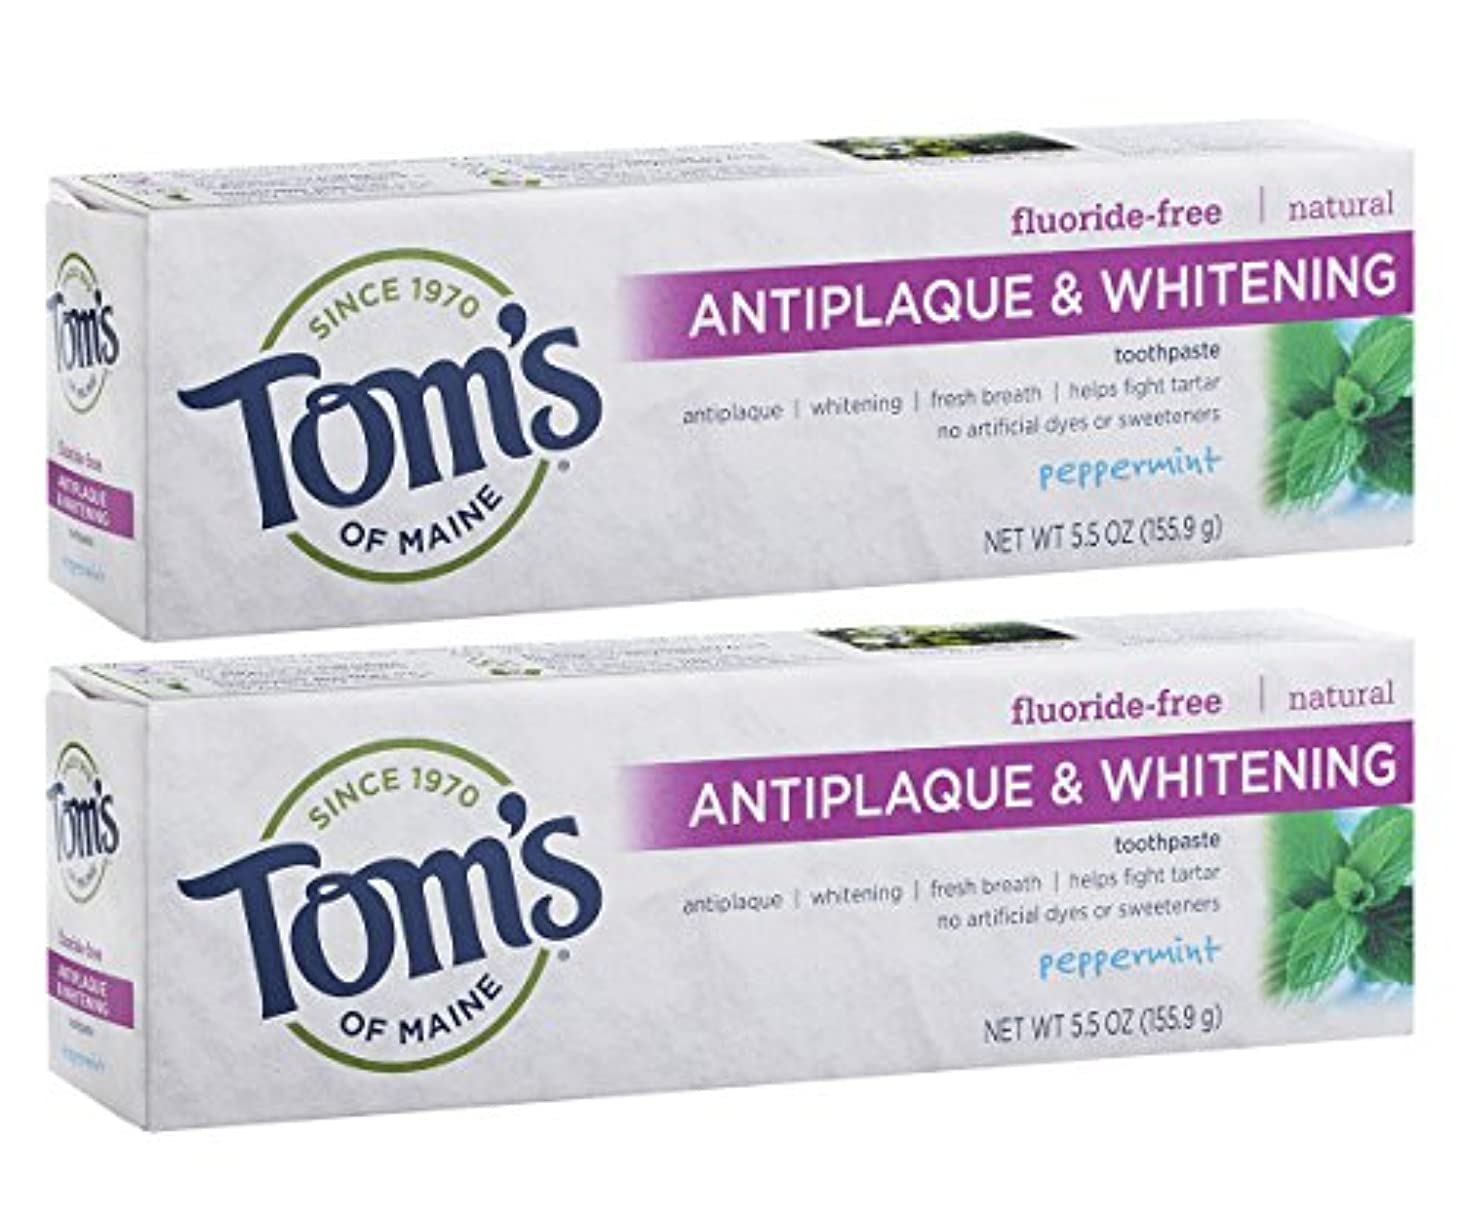 危険なトロイの木馬海港Tom's of Maine Antiplaque And Whitening Fluoride-Free Toothpaste, Peppermint, 5.5-Ounce by Tom's of Maine